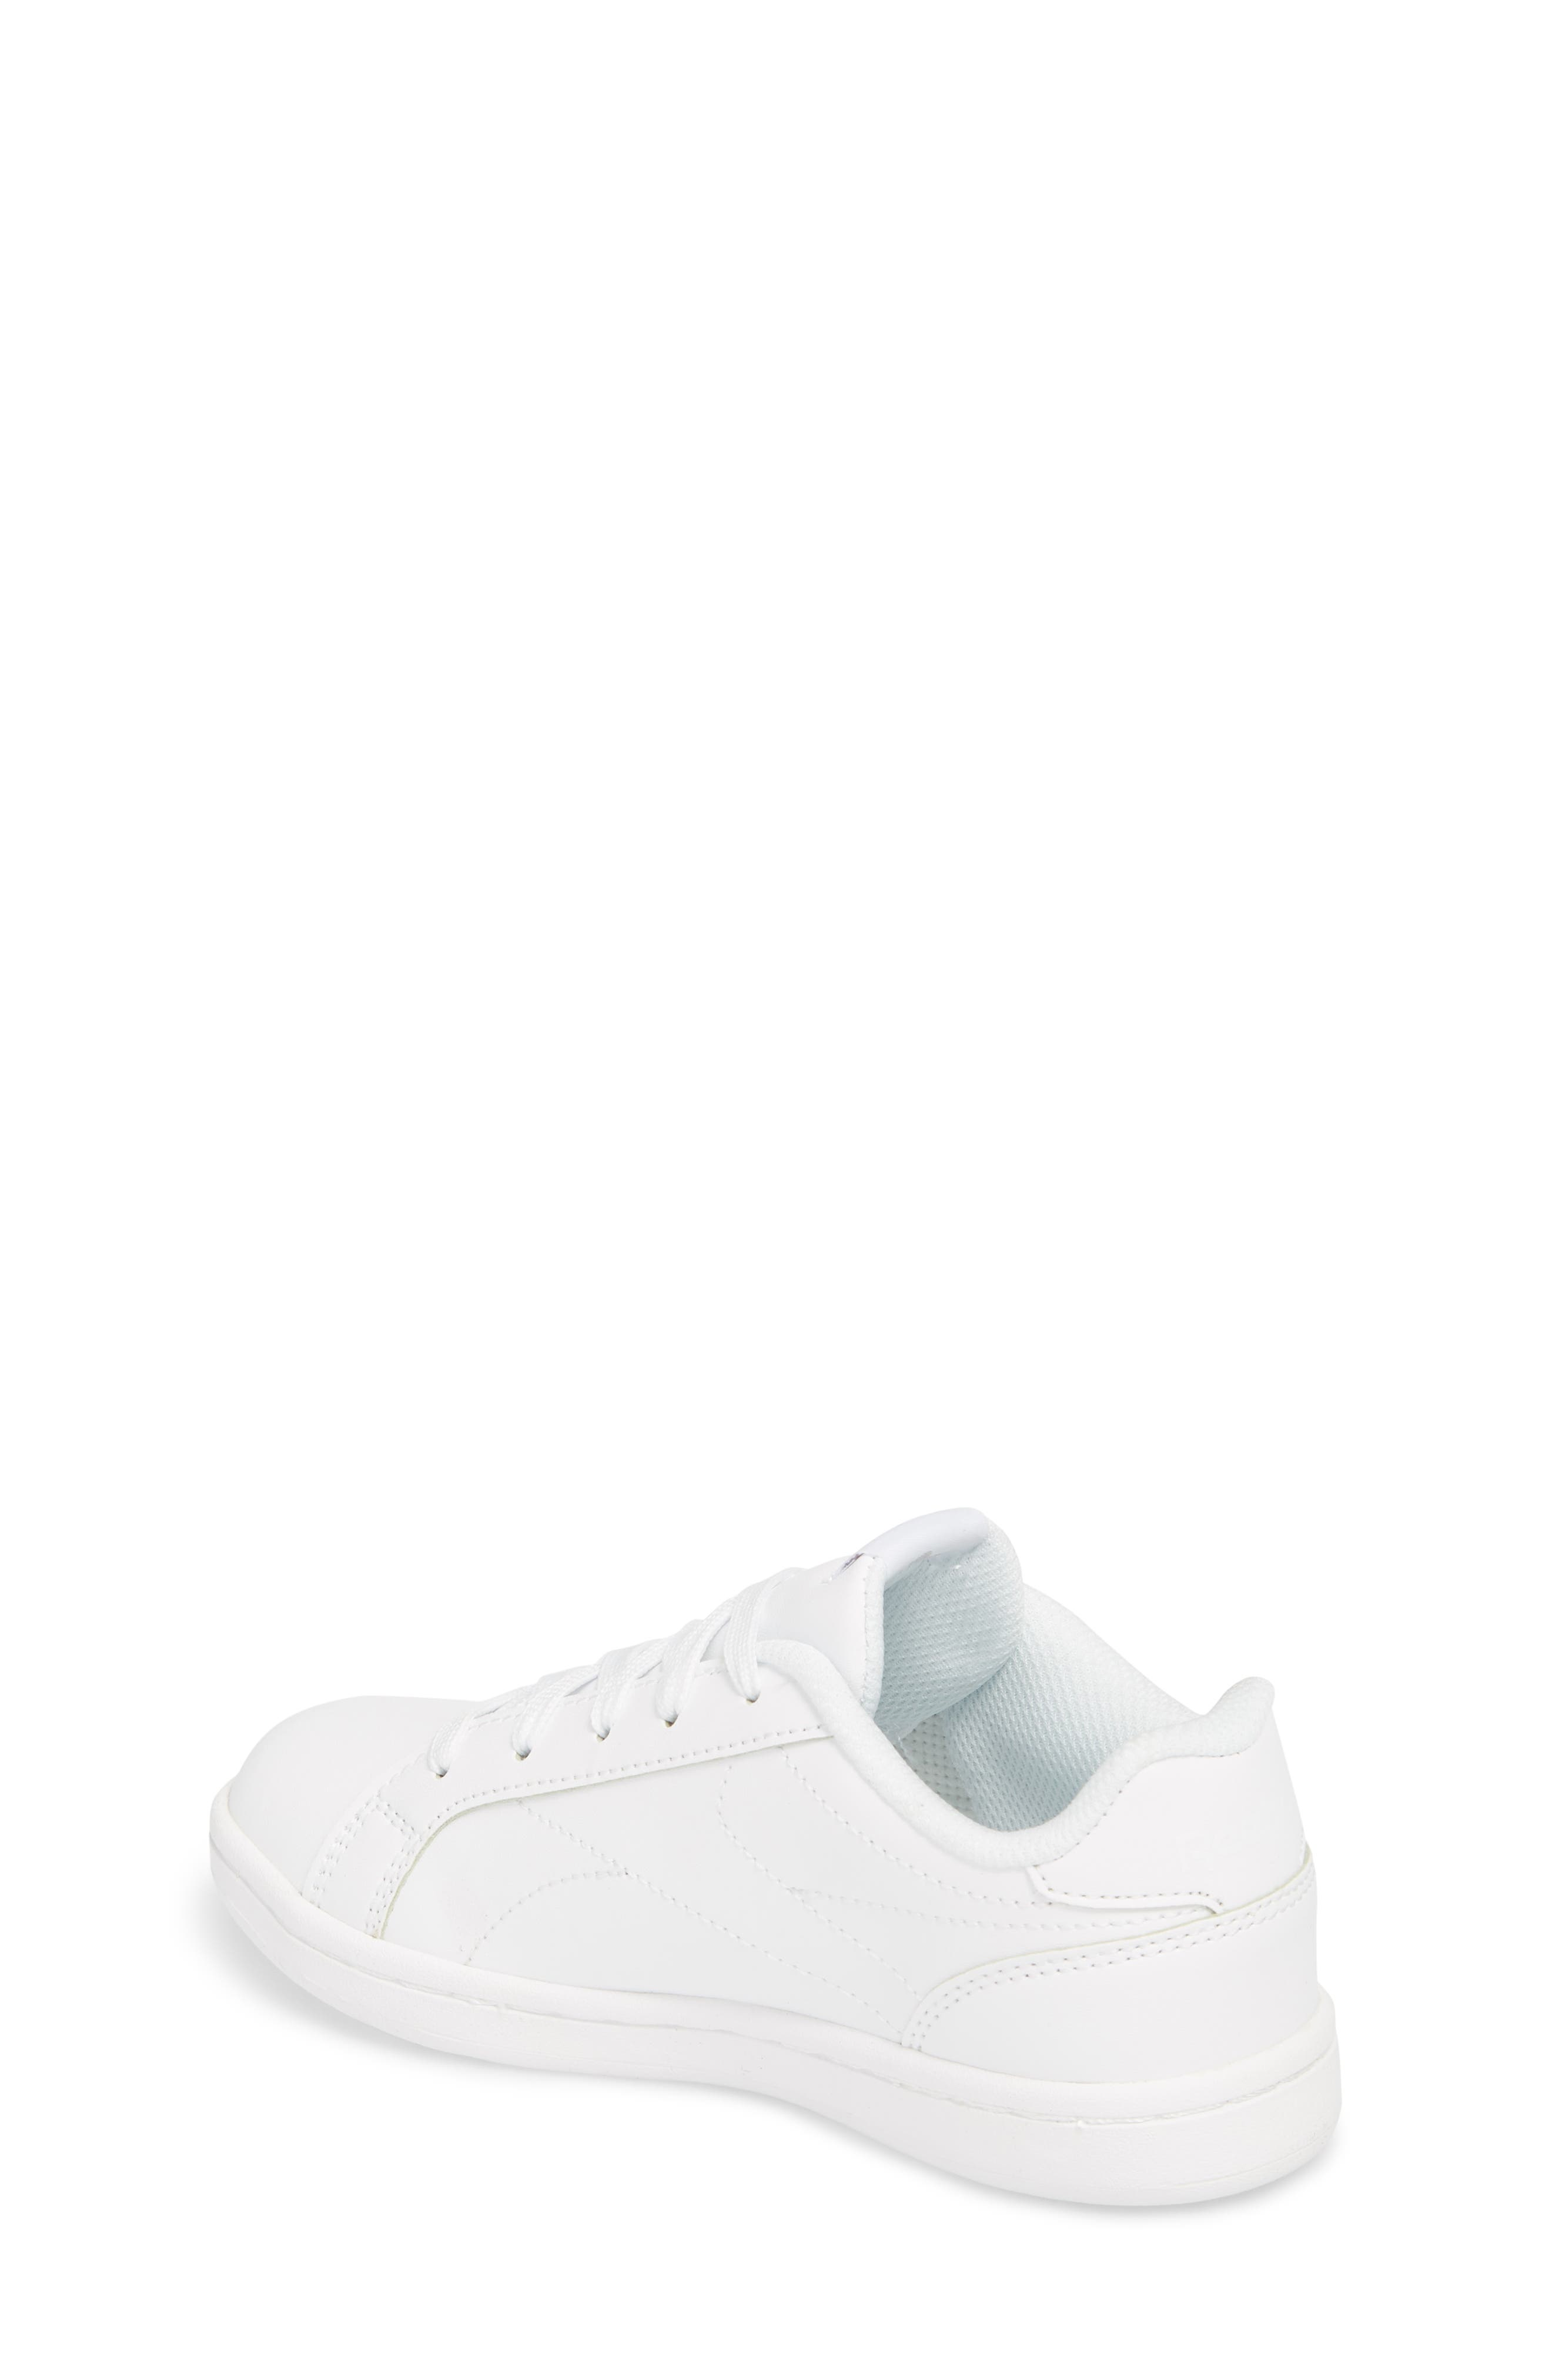 Royal Complete CLN Sneaker,                             Alternate thumbnail 4, color,